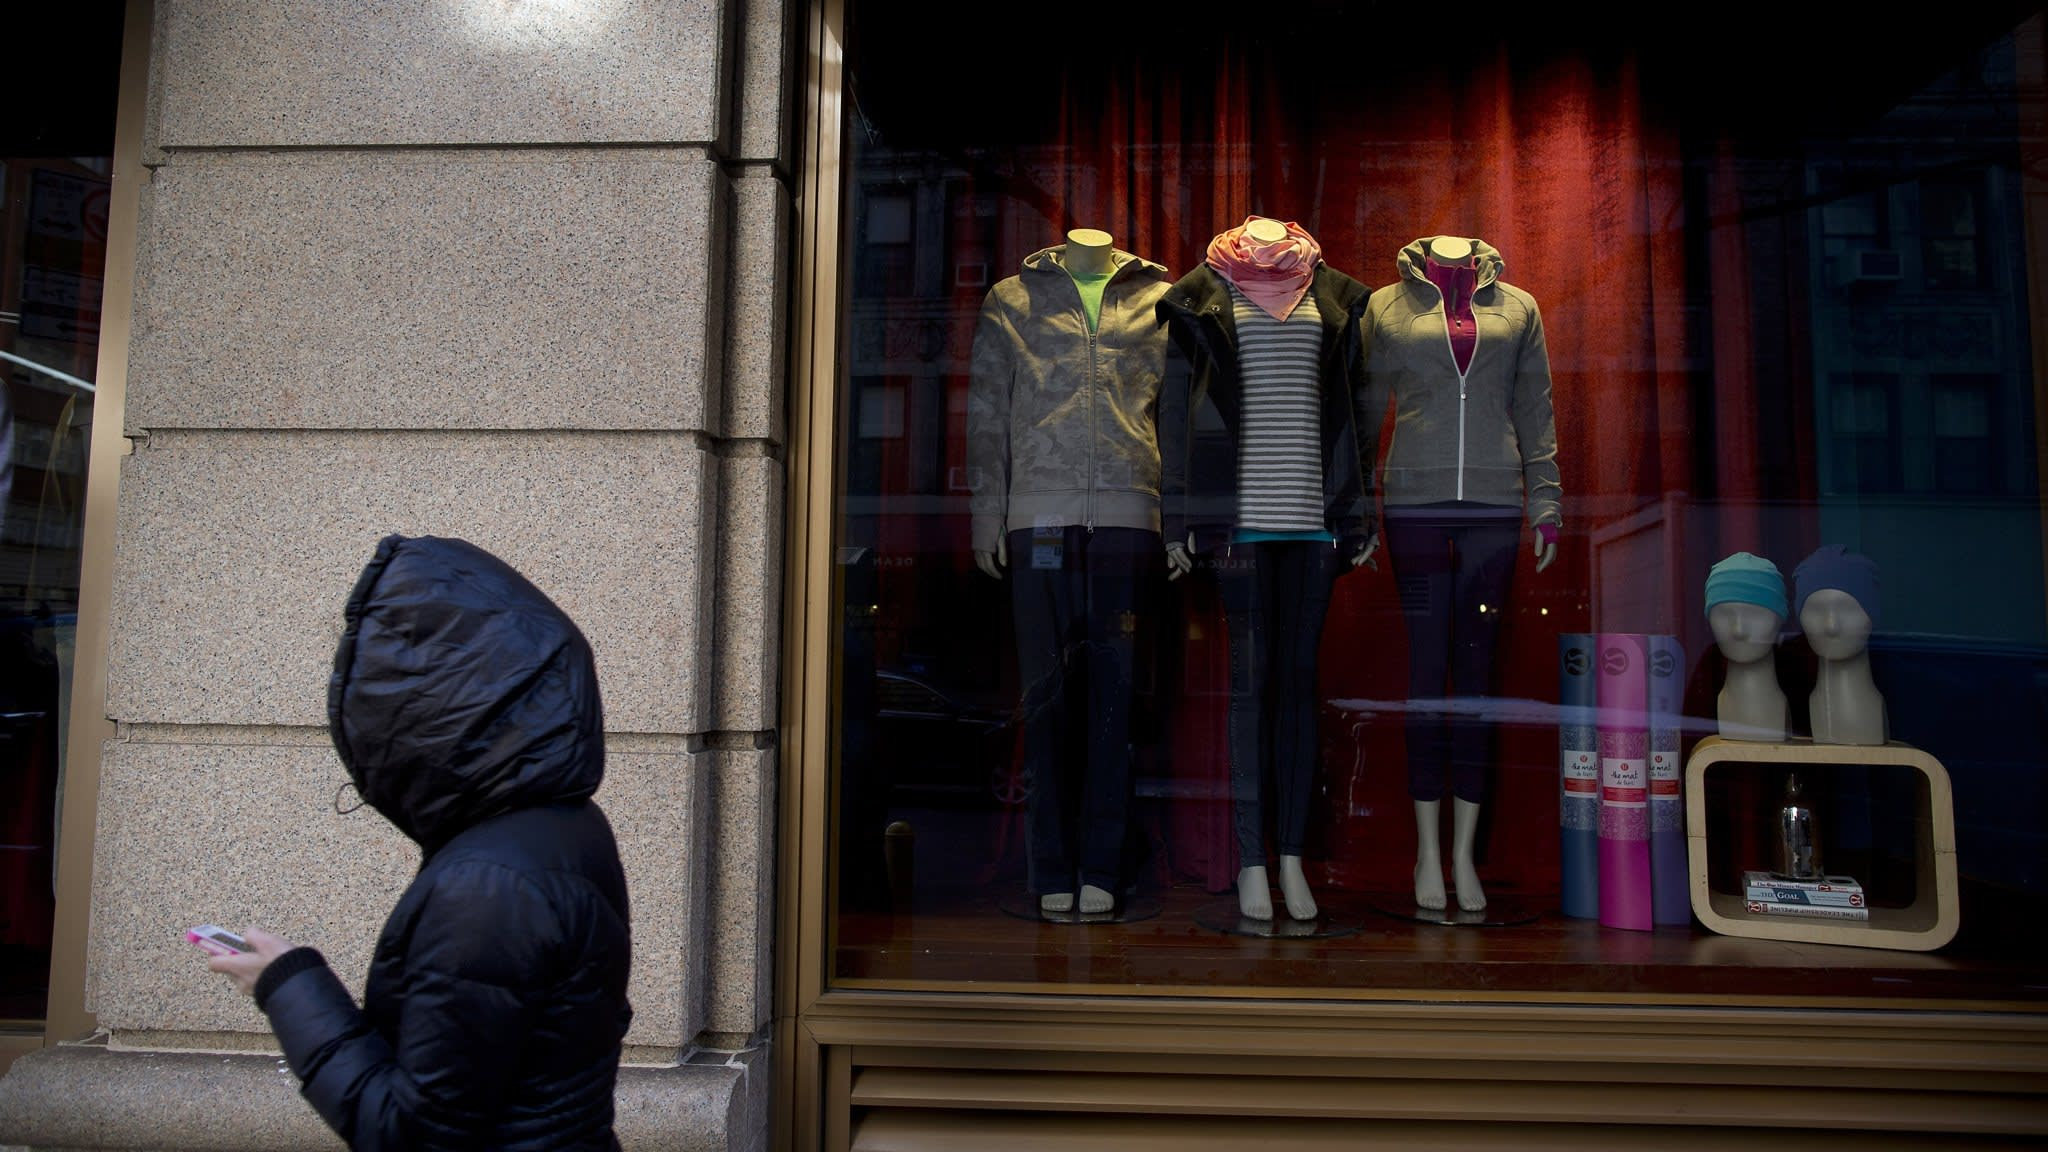 Lululemon chief quits abruptly over conduct breach